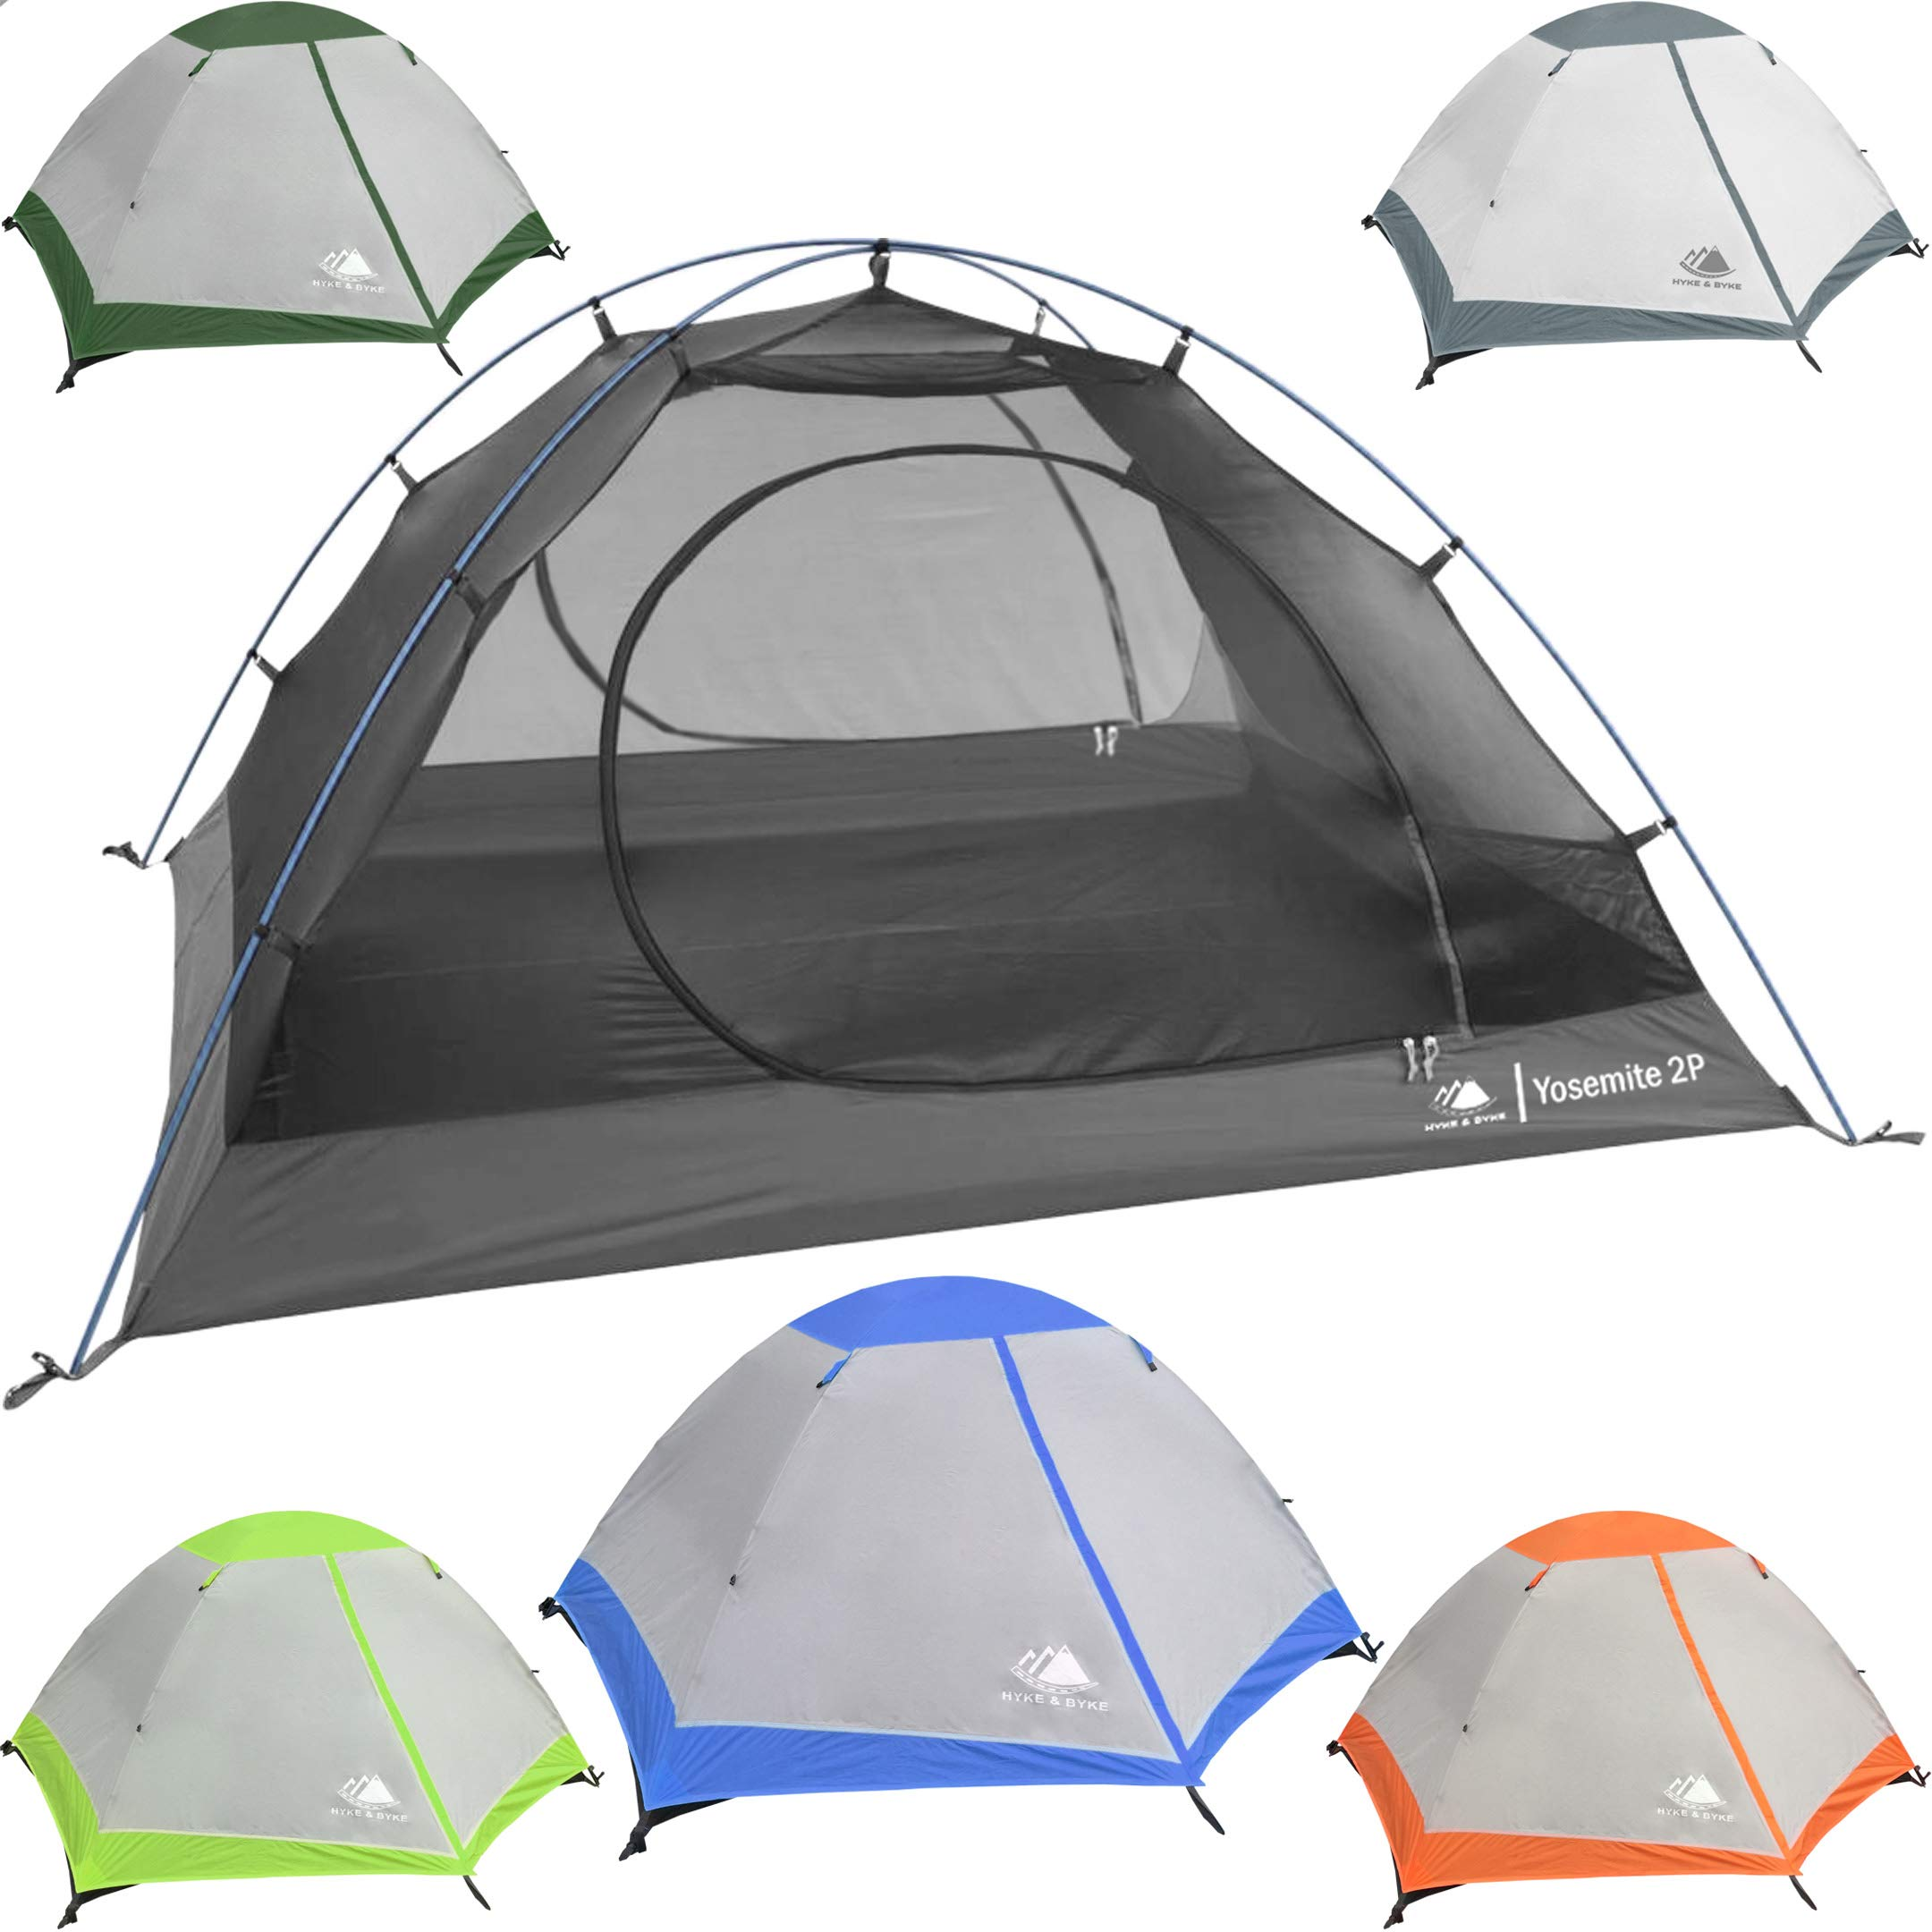 Hyke & Byke 2 Person Backpacking Tent with Footprint - Lightweight Yosemite Two Man 3 Season Ultralight, Waterproof, Ultra Compact 2p Freestanding Backpack Tents for Camping and Hiking (Blue) by Hyke & Byke